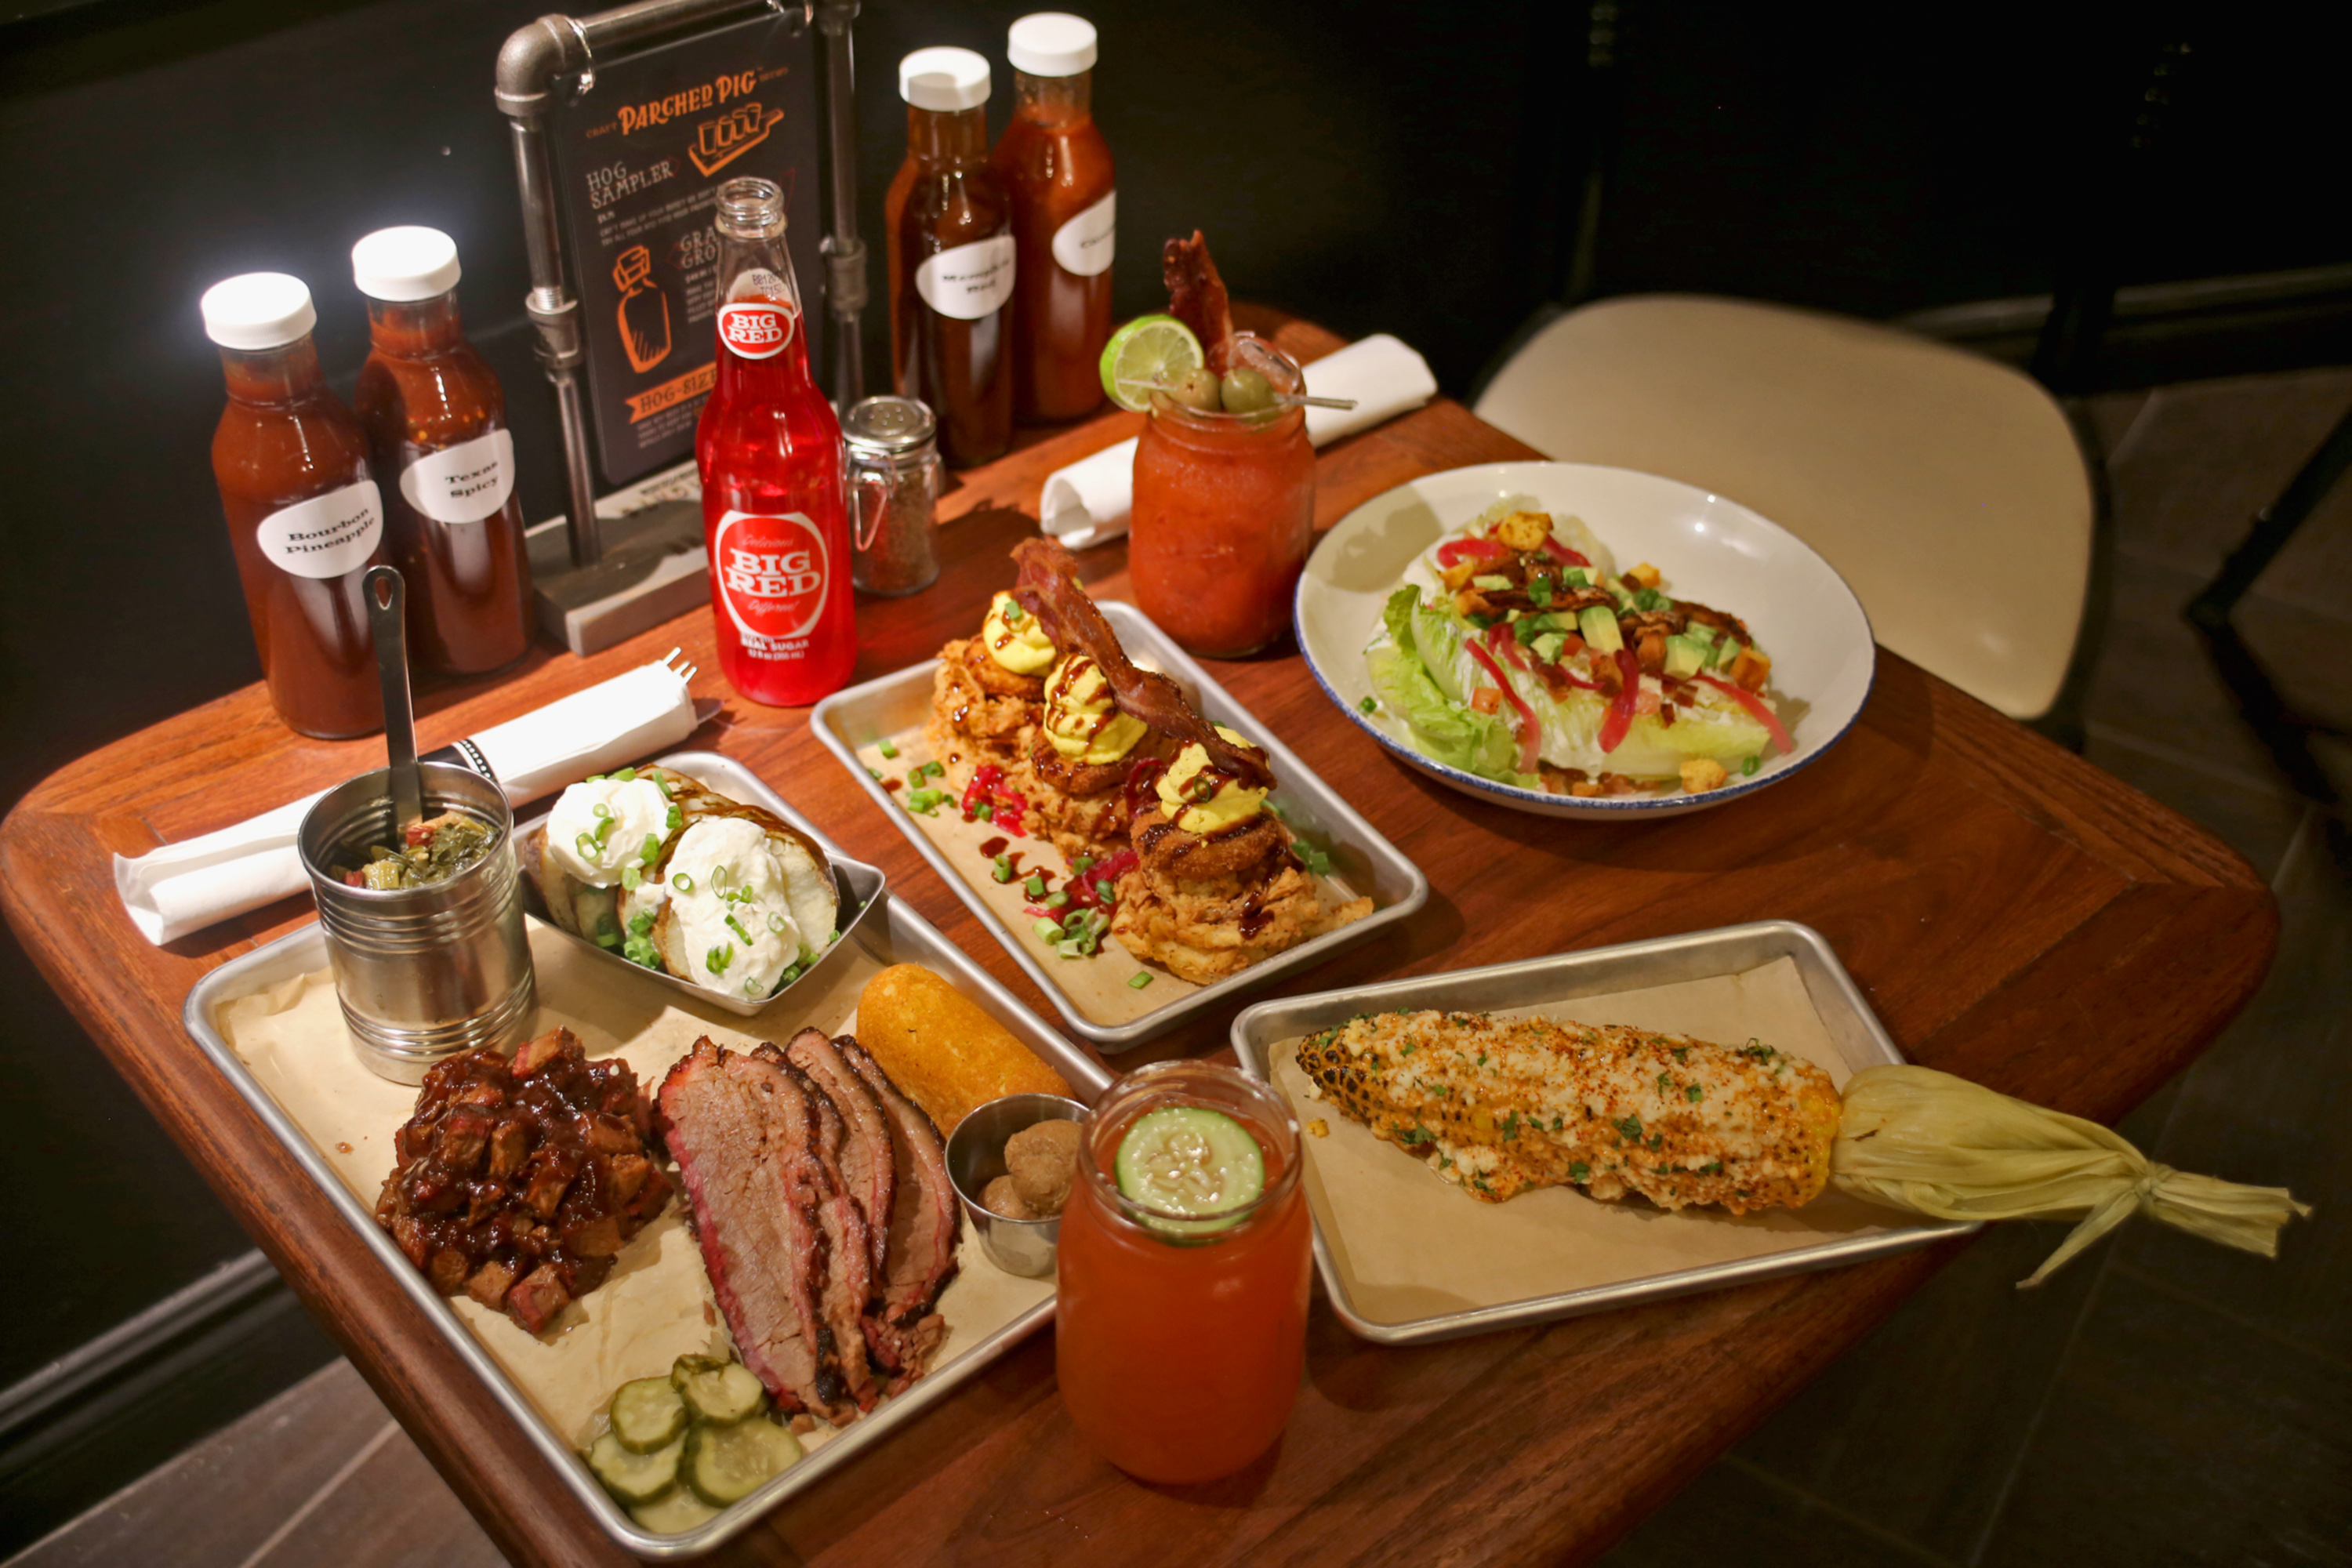 Brisket, elote corn, bacon and eggs, and the barbecue salad at Beaumont's Southern Kitchen